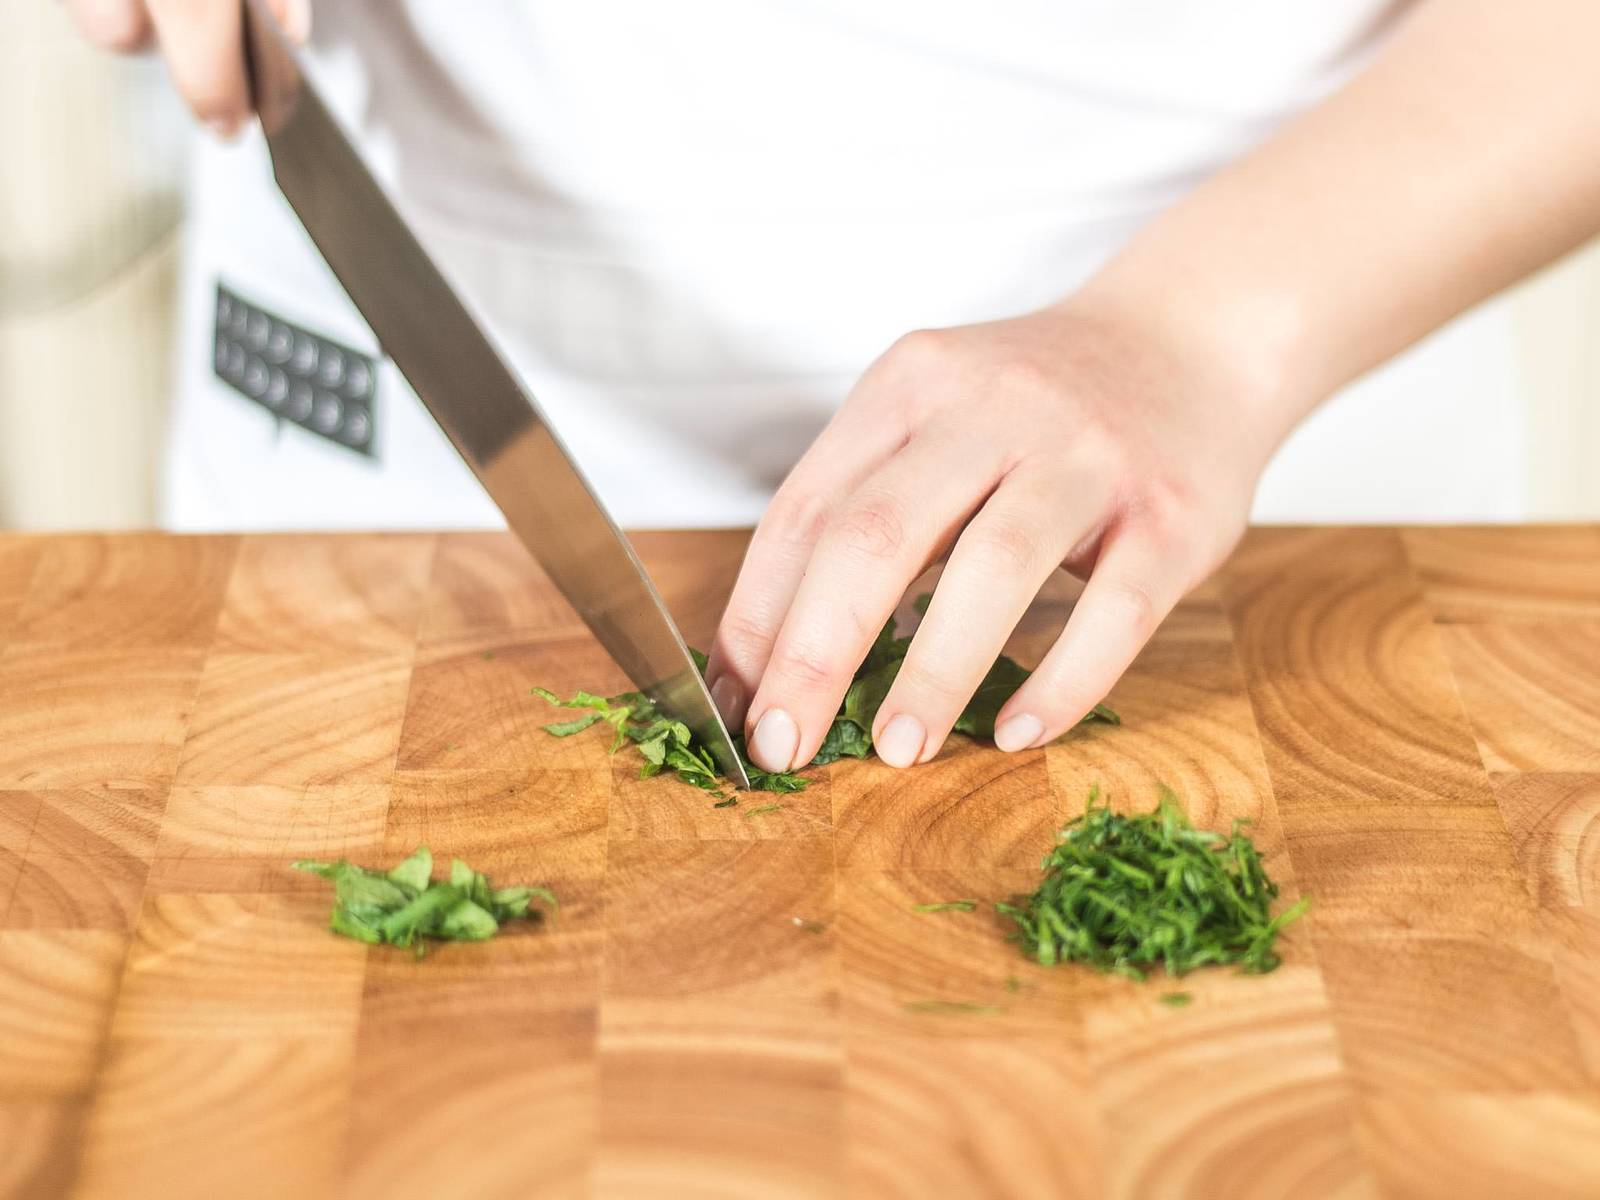 Cut parsley and mint into fine strips.